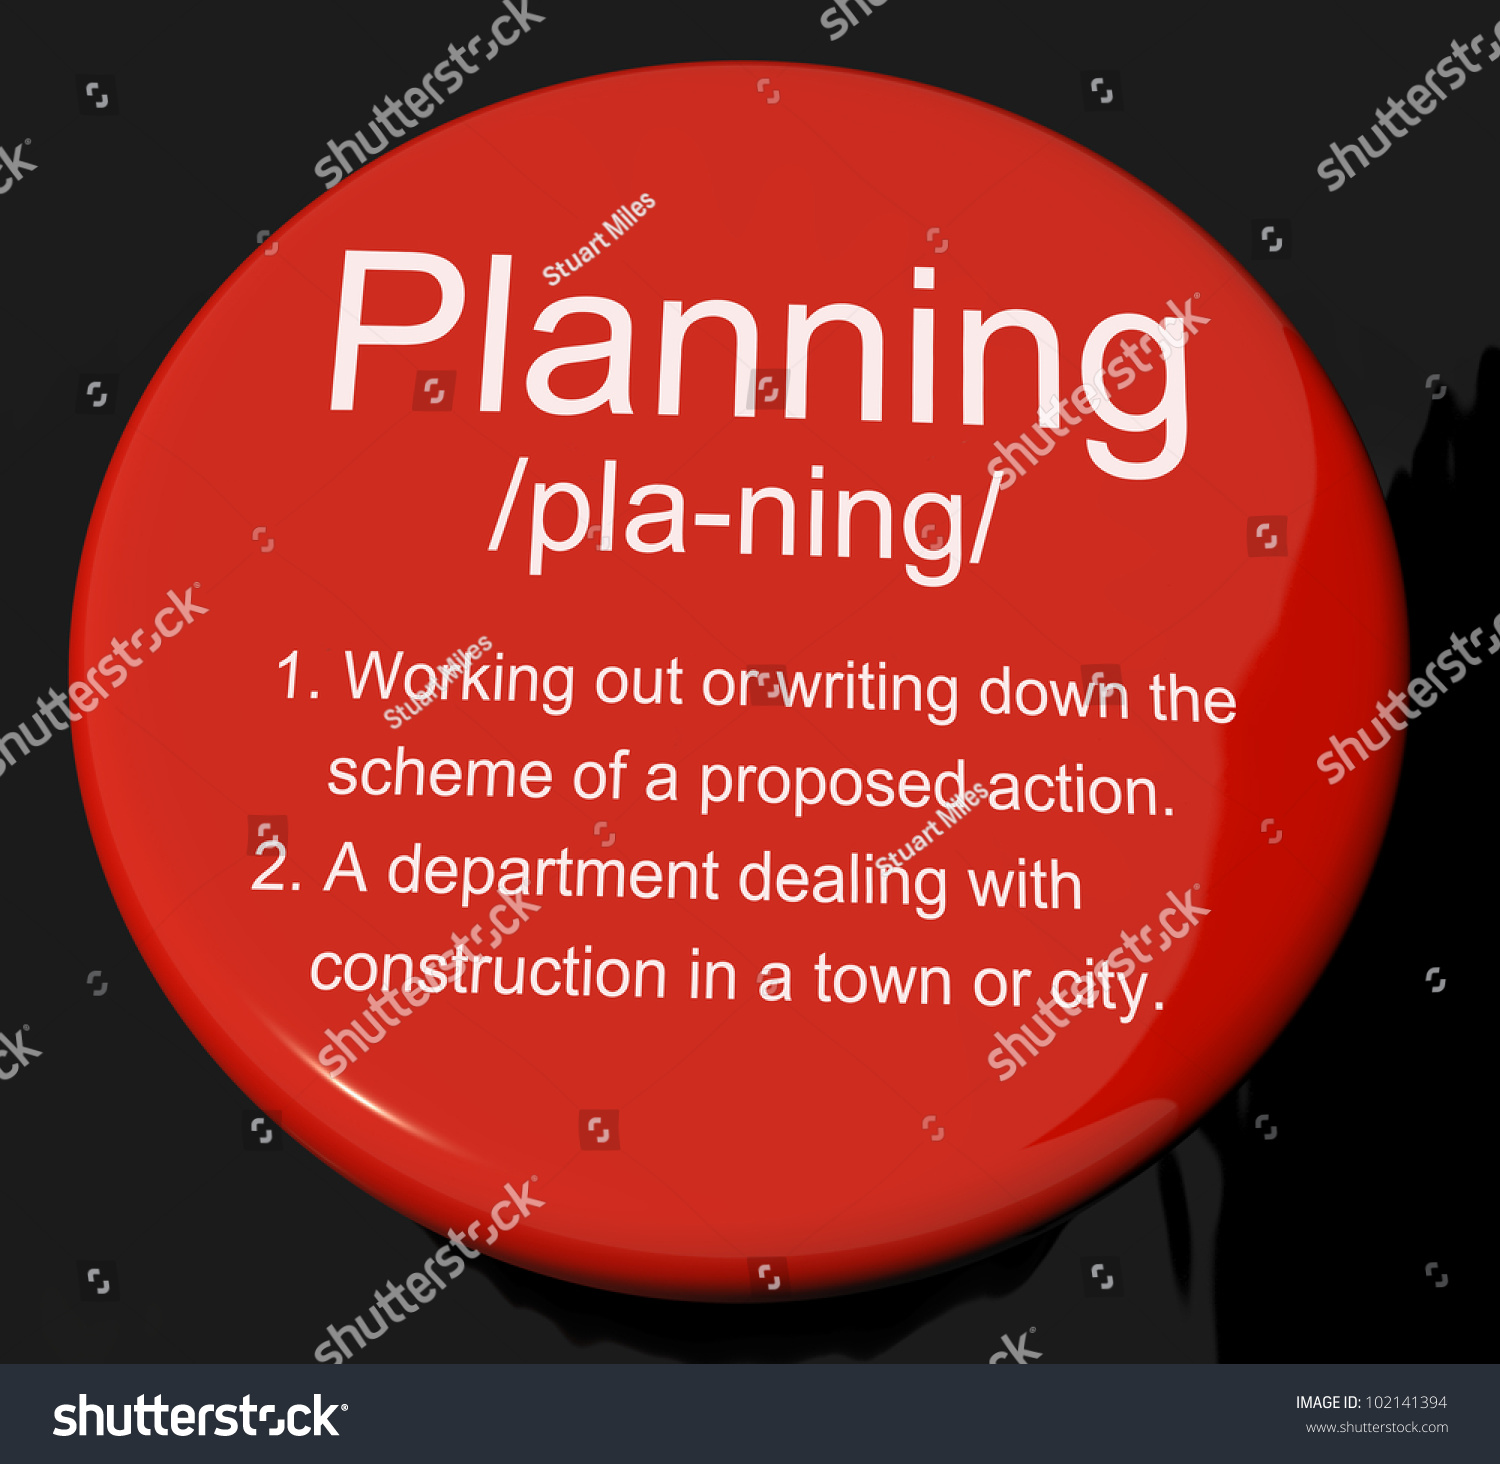 planning definition button shows organizing strategy stock planning definition button shows organizing strategy and scheme